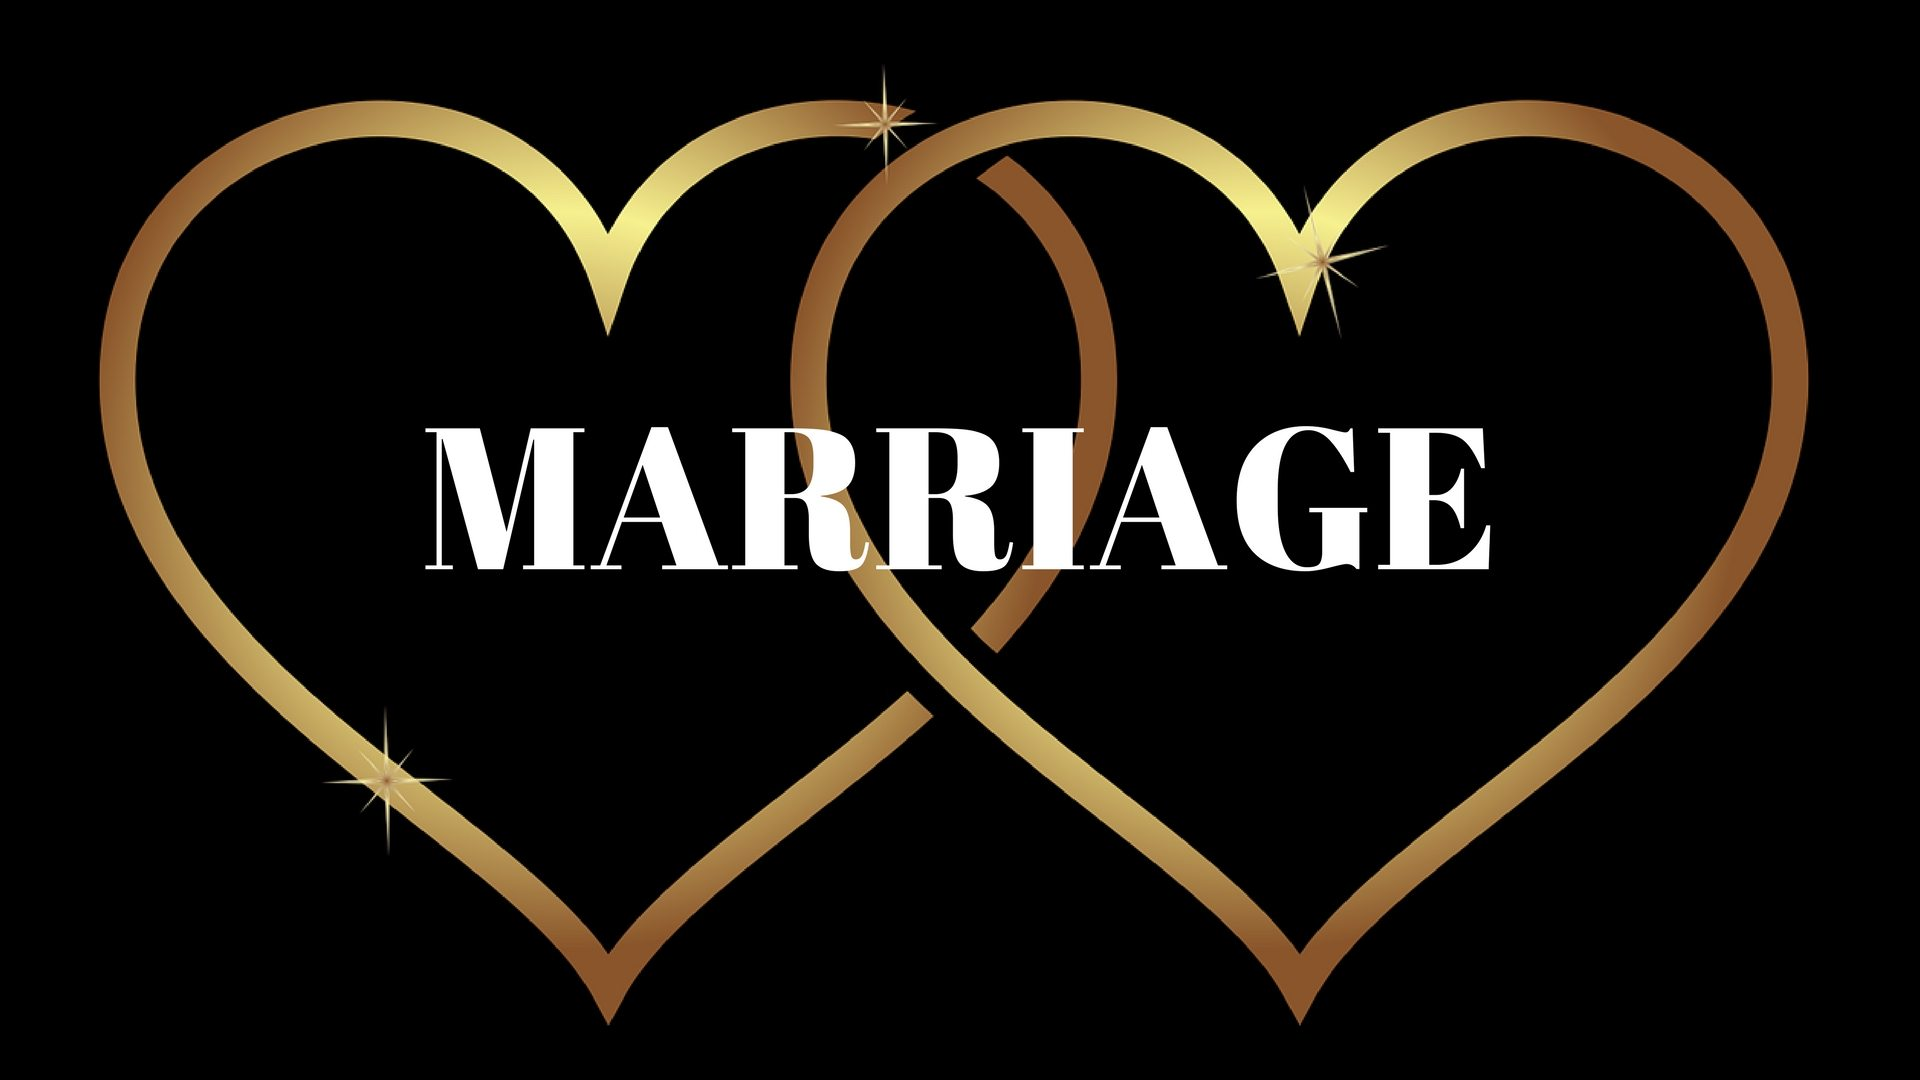 MARRIAGE - Valuable Asset - Pixabay - Canva